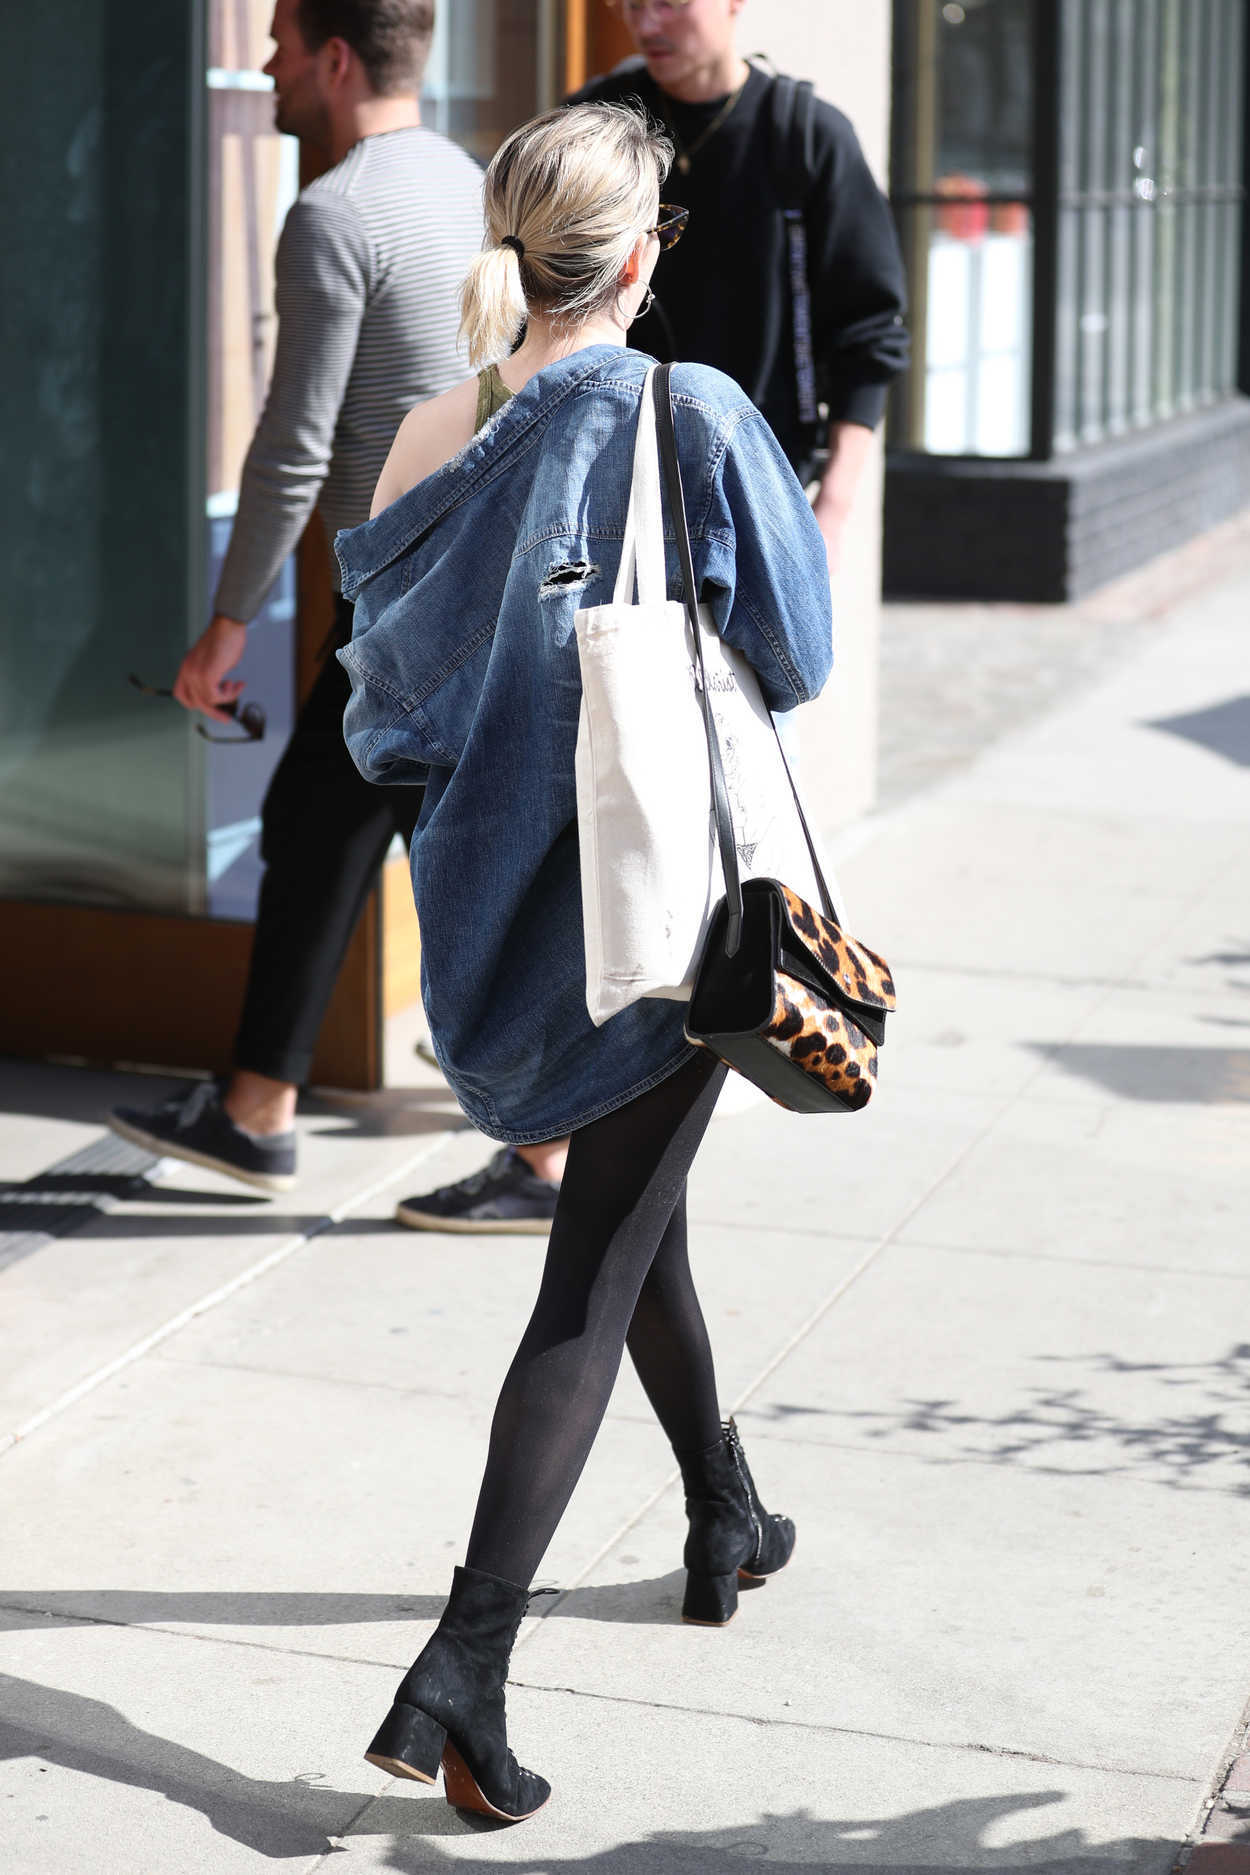 Emma roberts arrives at 901 salon in west hollywood 02 12 for 901 salon west hollywood